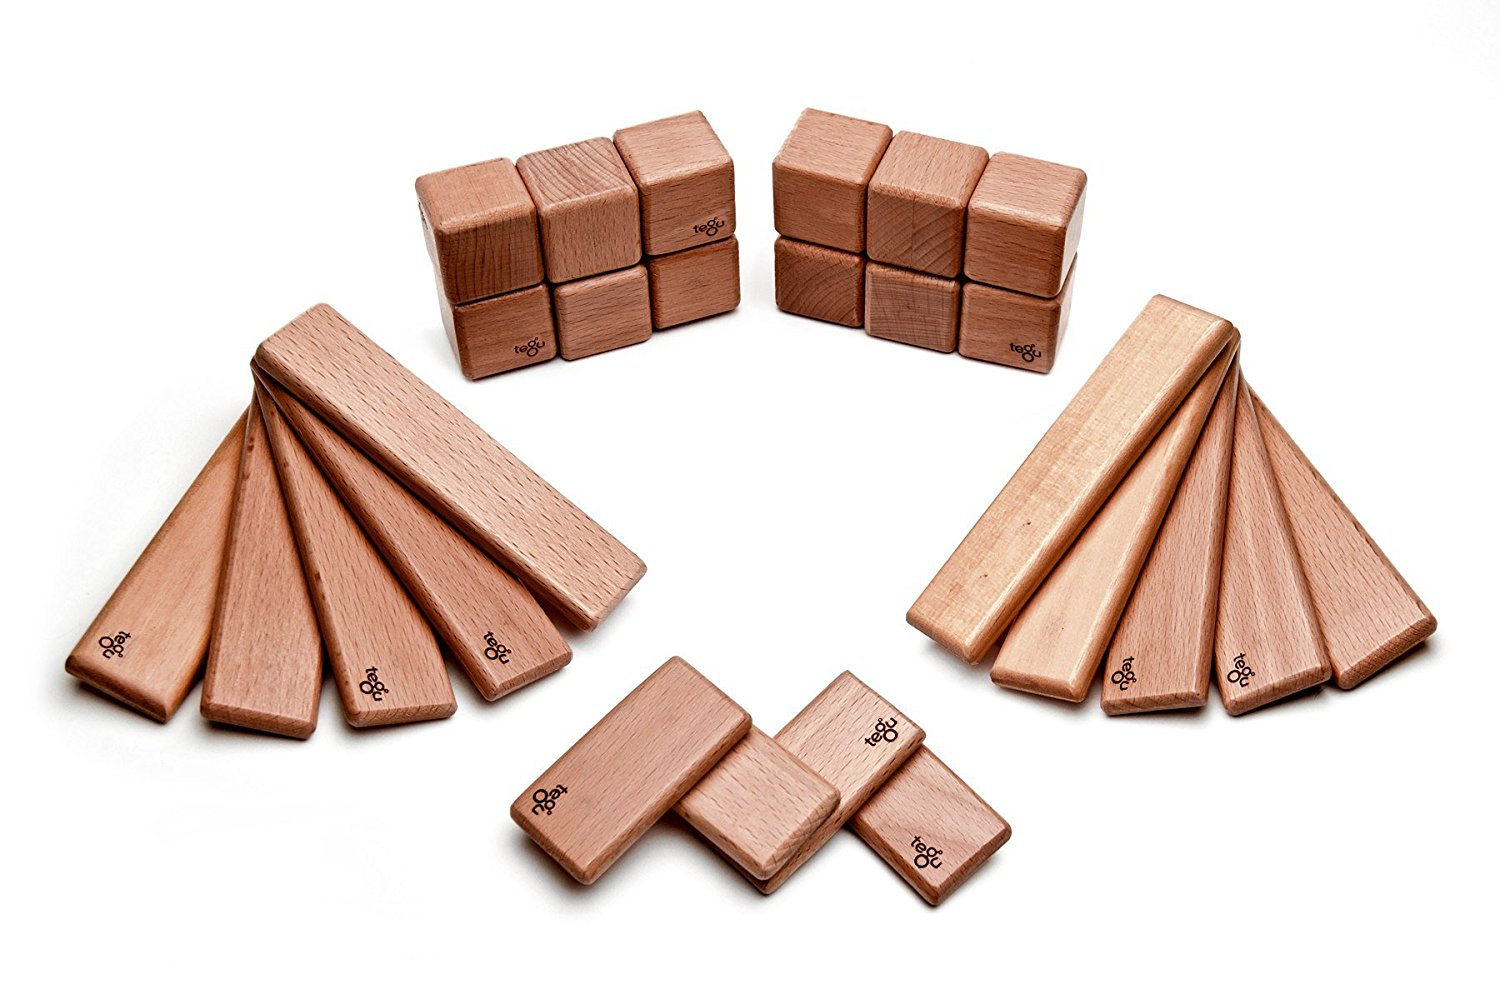 26 Piece Tegu Discovery Magnetic Wooden Block Set, Mahogany by Tegu